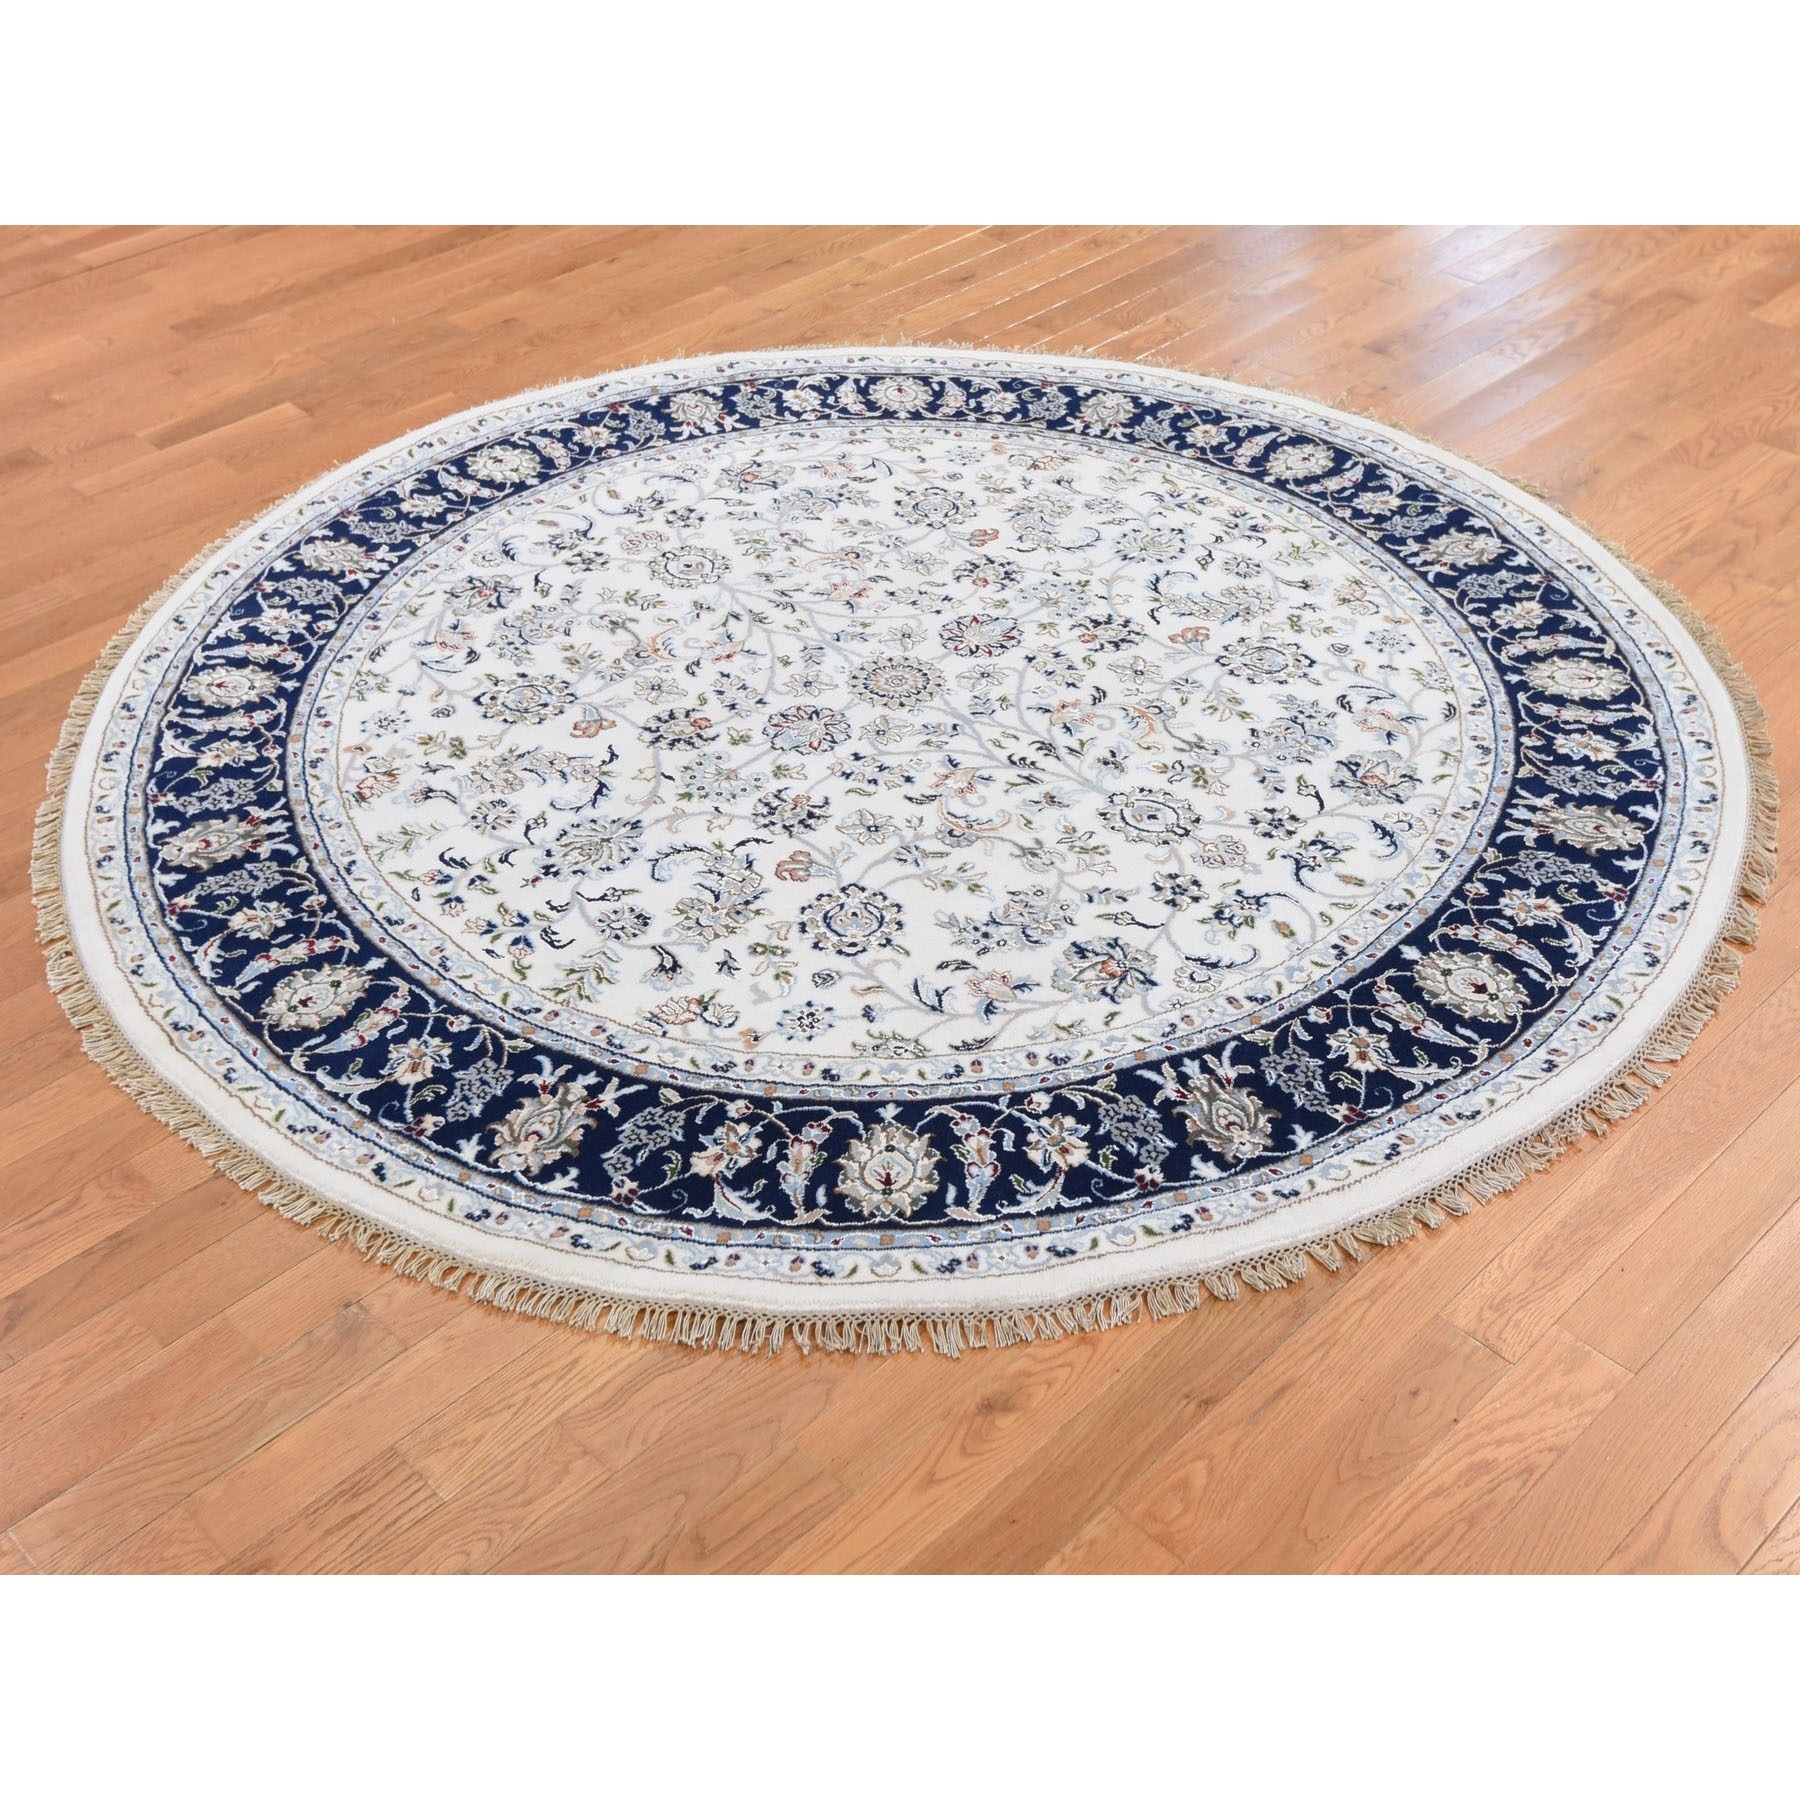 6-1 x6-1  Ivory Nain Wool And Silk 250 KPSI All Over Design Hand Knotted Round Oriental Rug